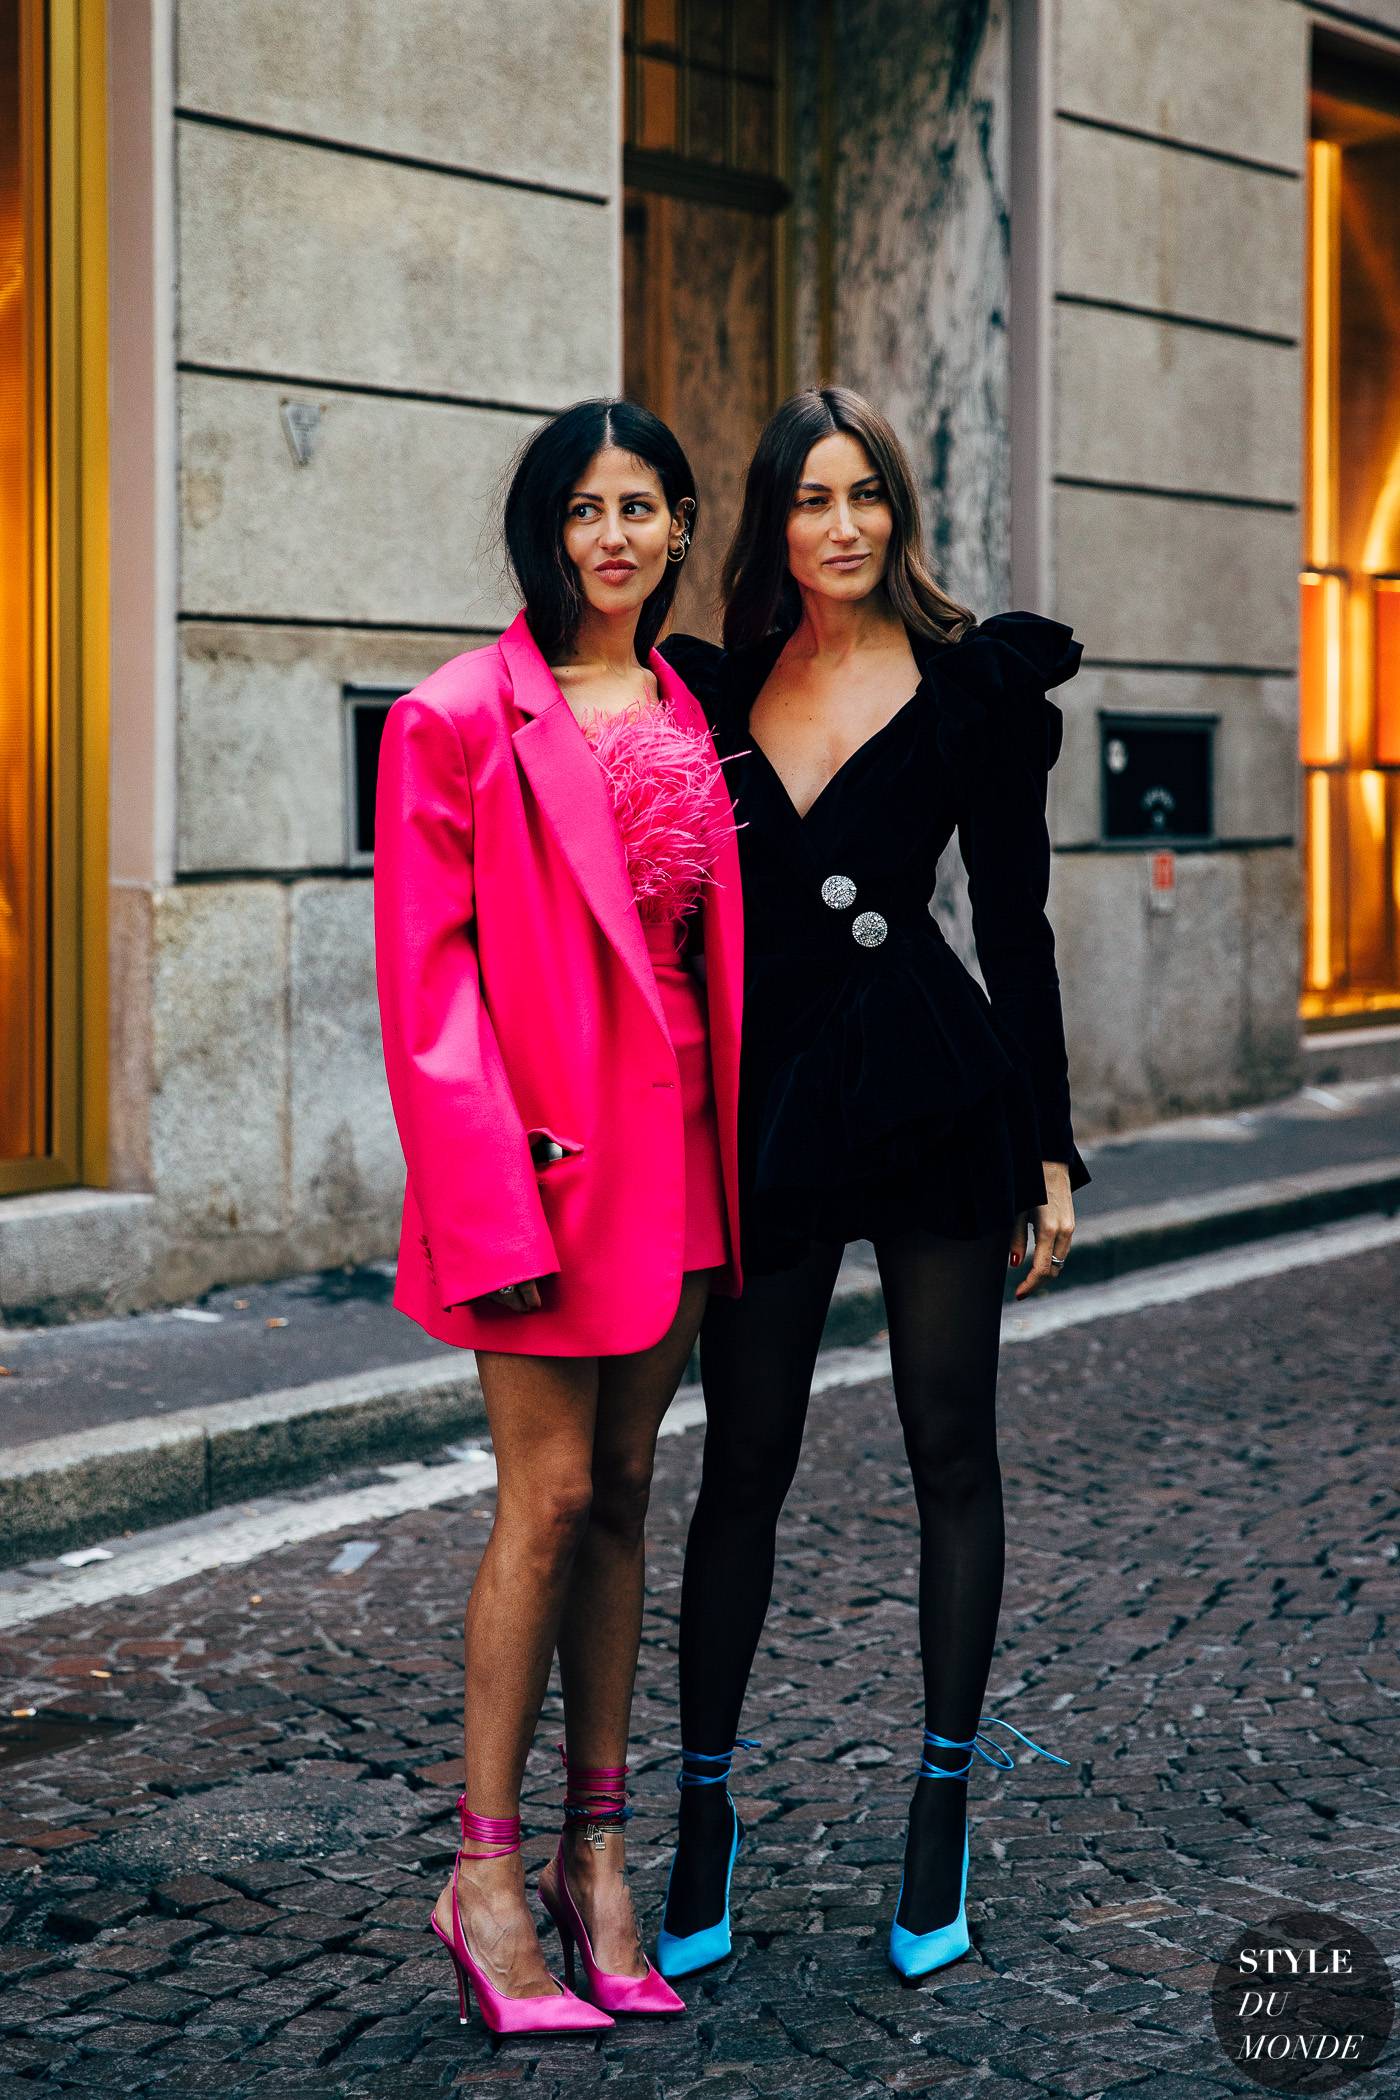 Gilda Ambrosio and Giorgia Tordini by STYLEDUMONDE Street Style Fashion Photography20190221_48A4308